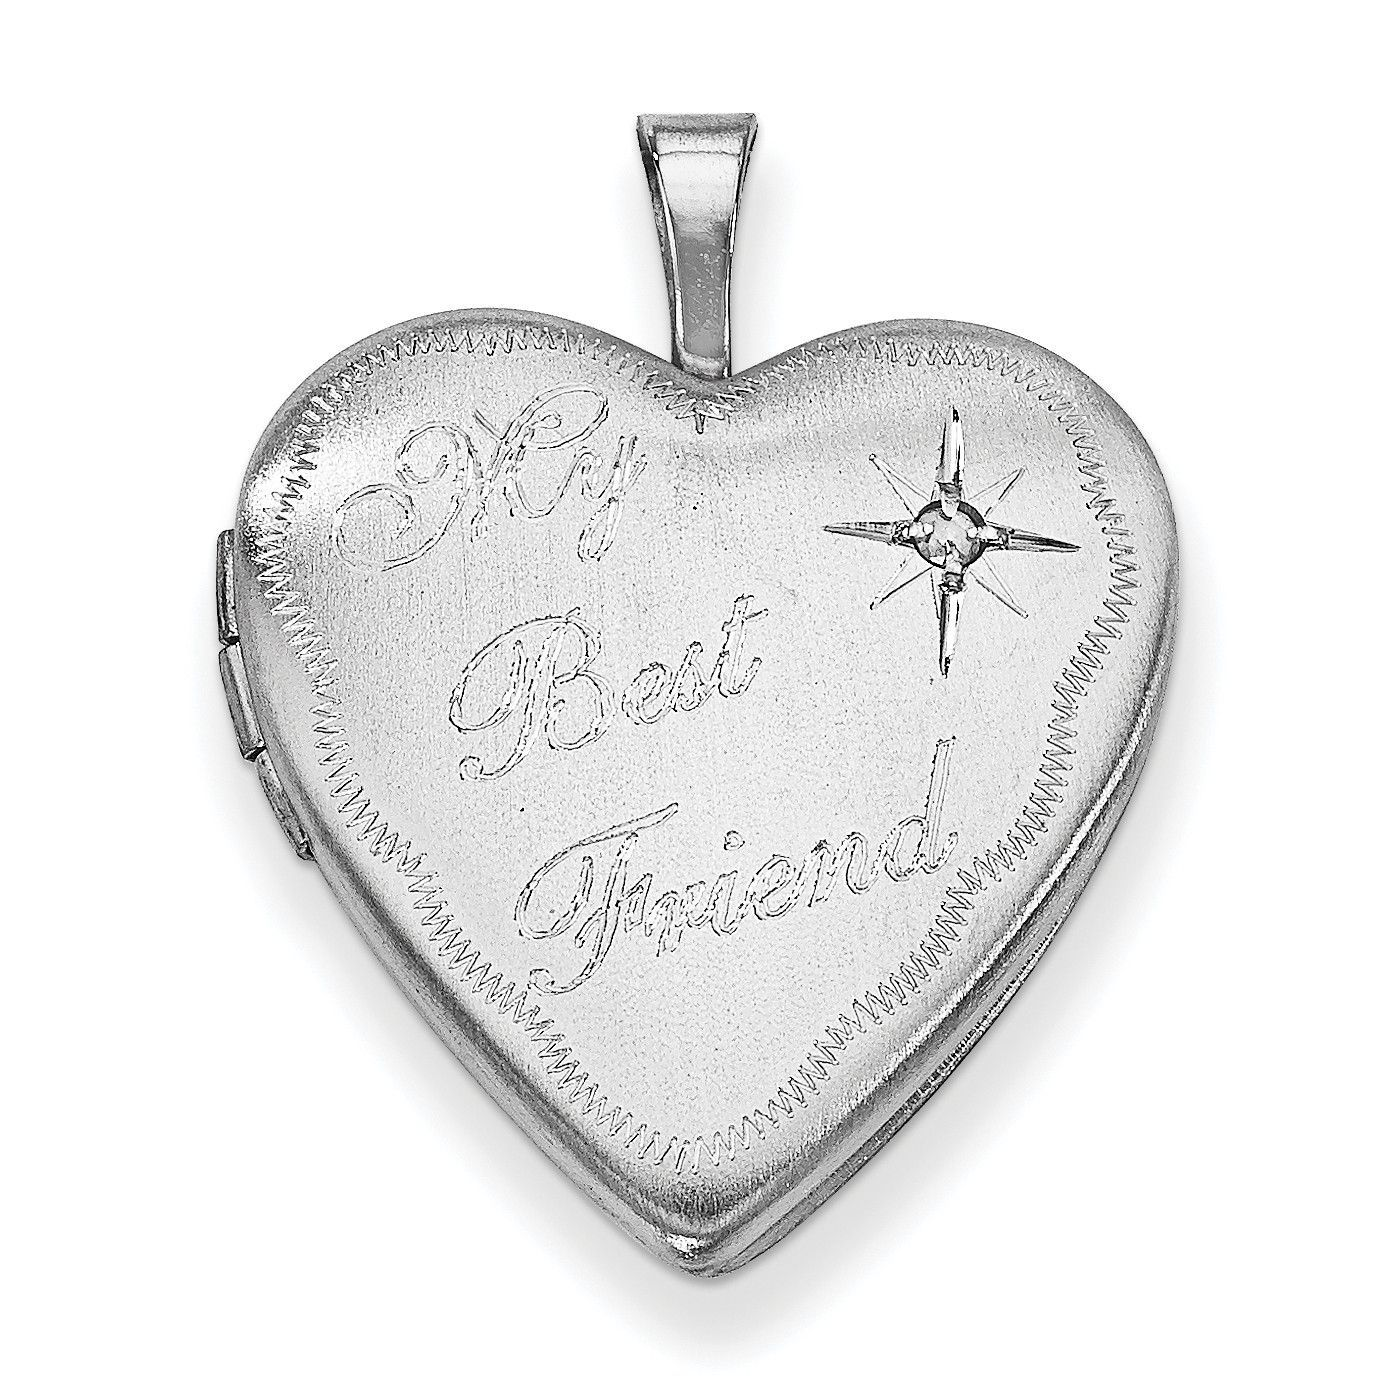 best necklace jewelry friend bling stainless bff necklaces lockets steel splitheart enamel heart sgd split